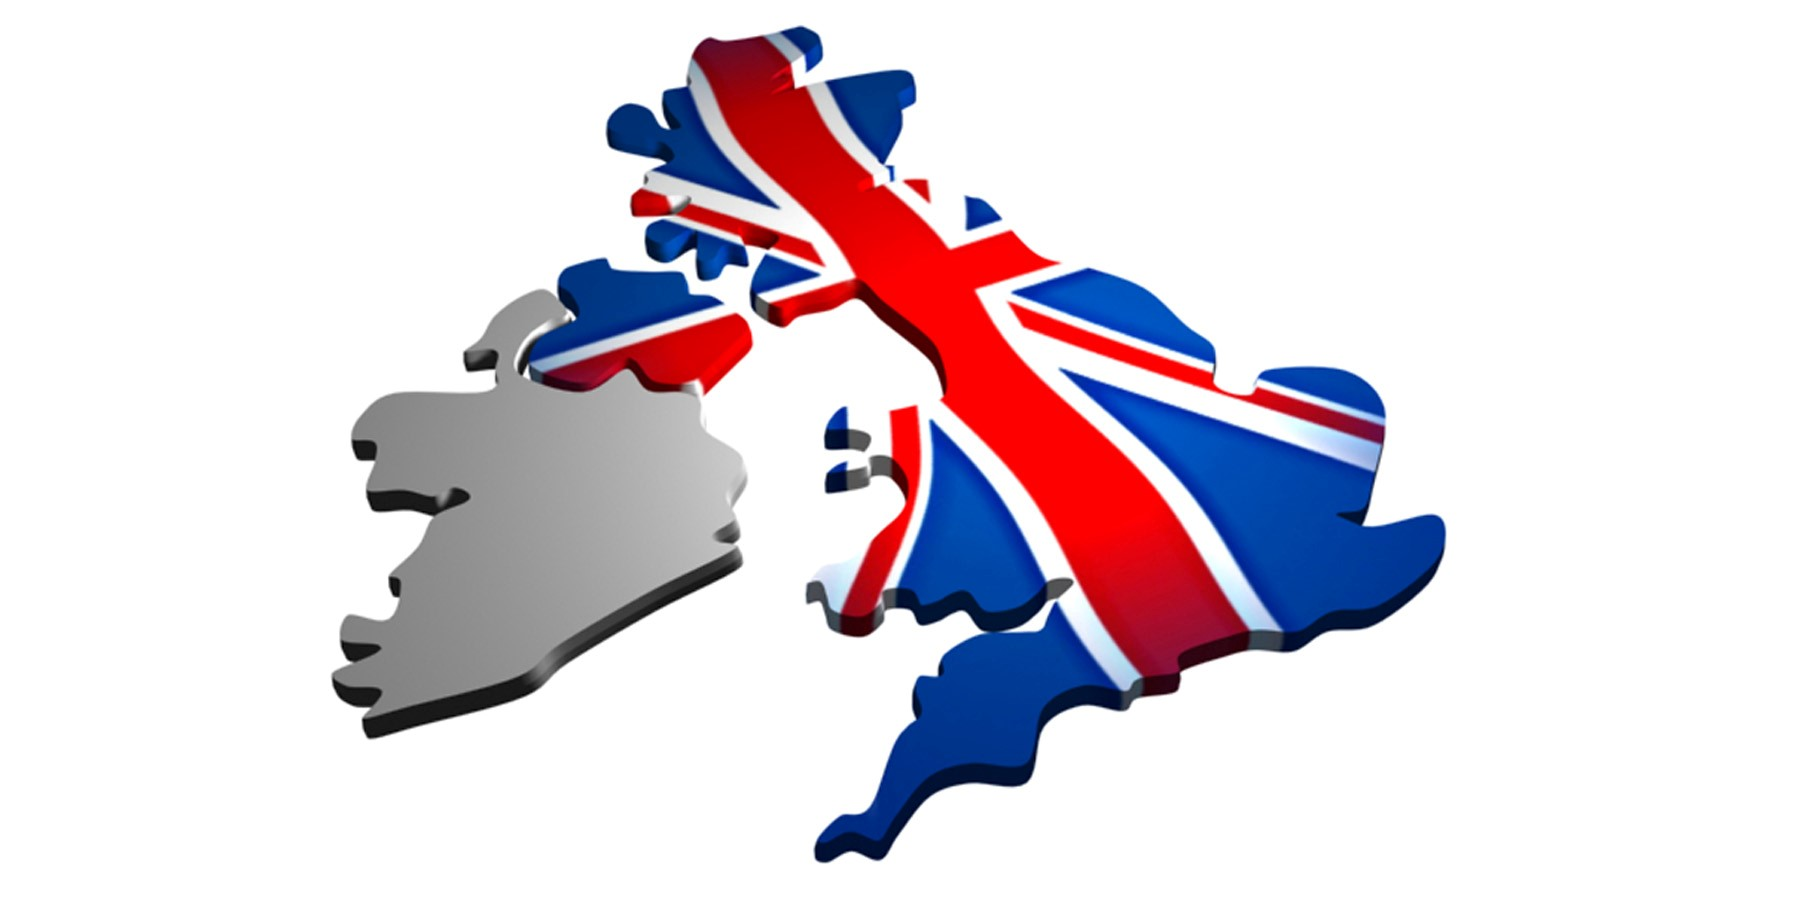 UK map and flag graphic resized #2